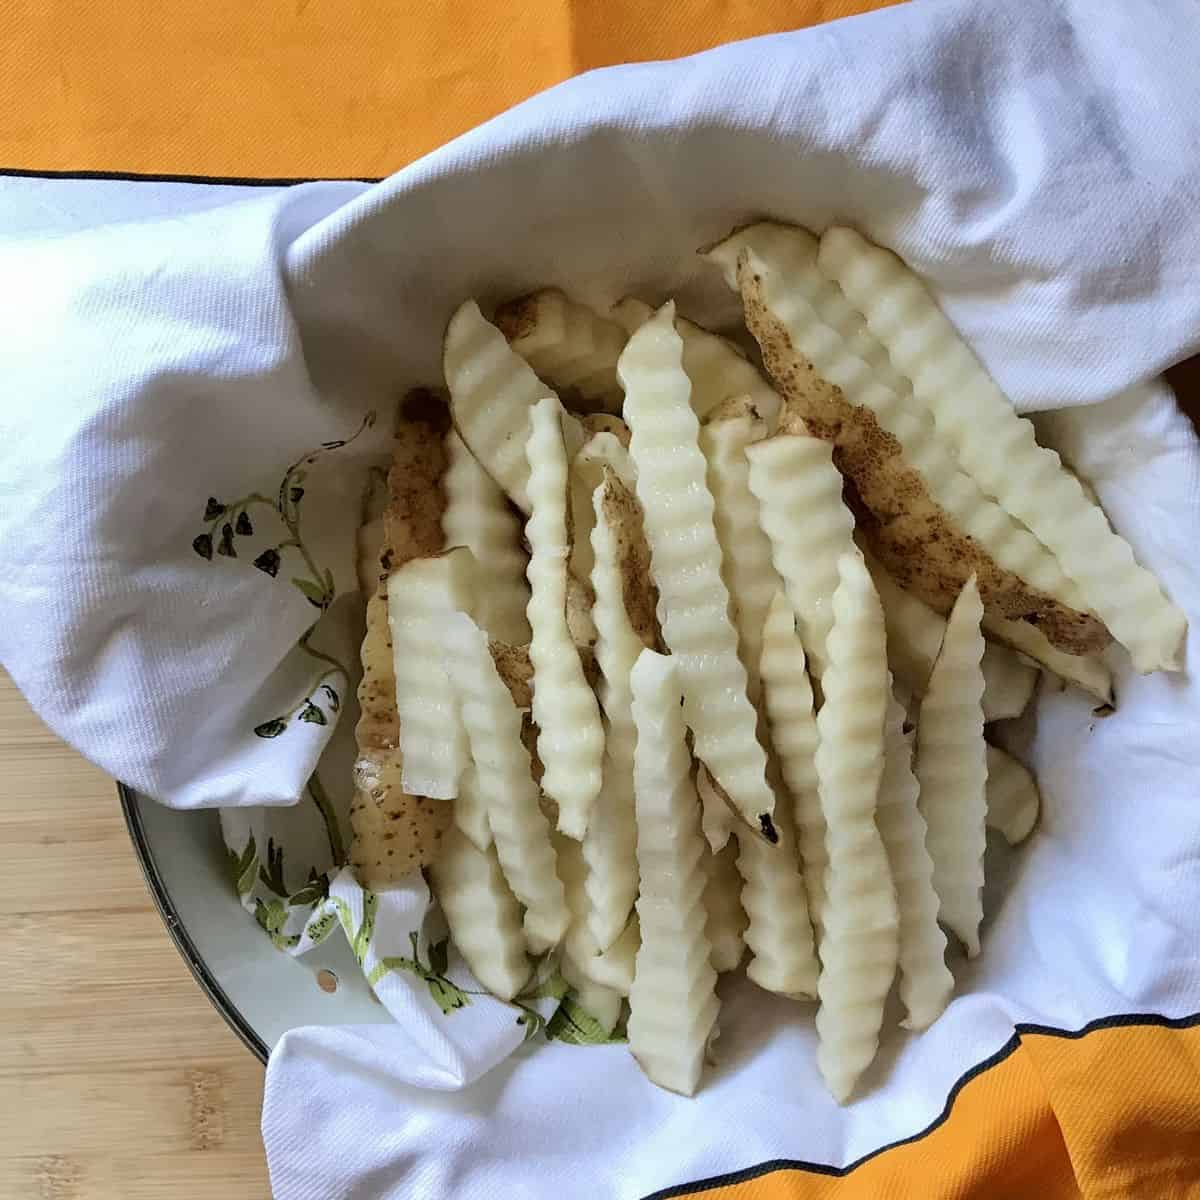 Wavy fries in the process of being dried with a tea towel.